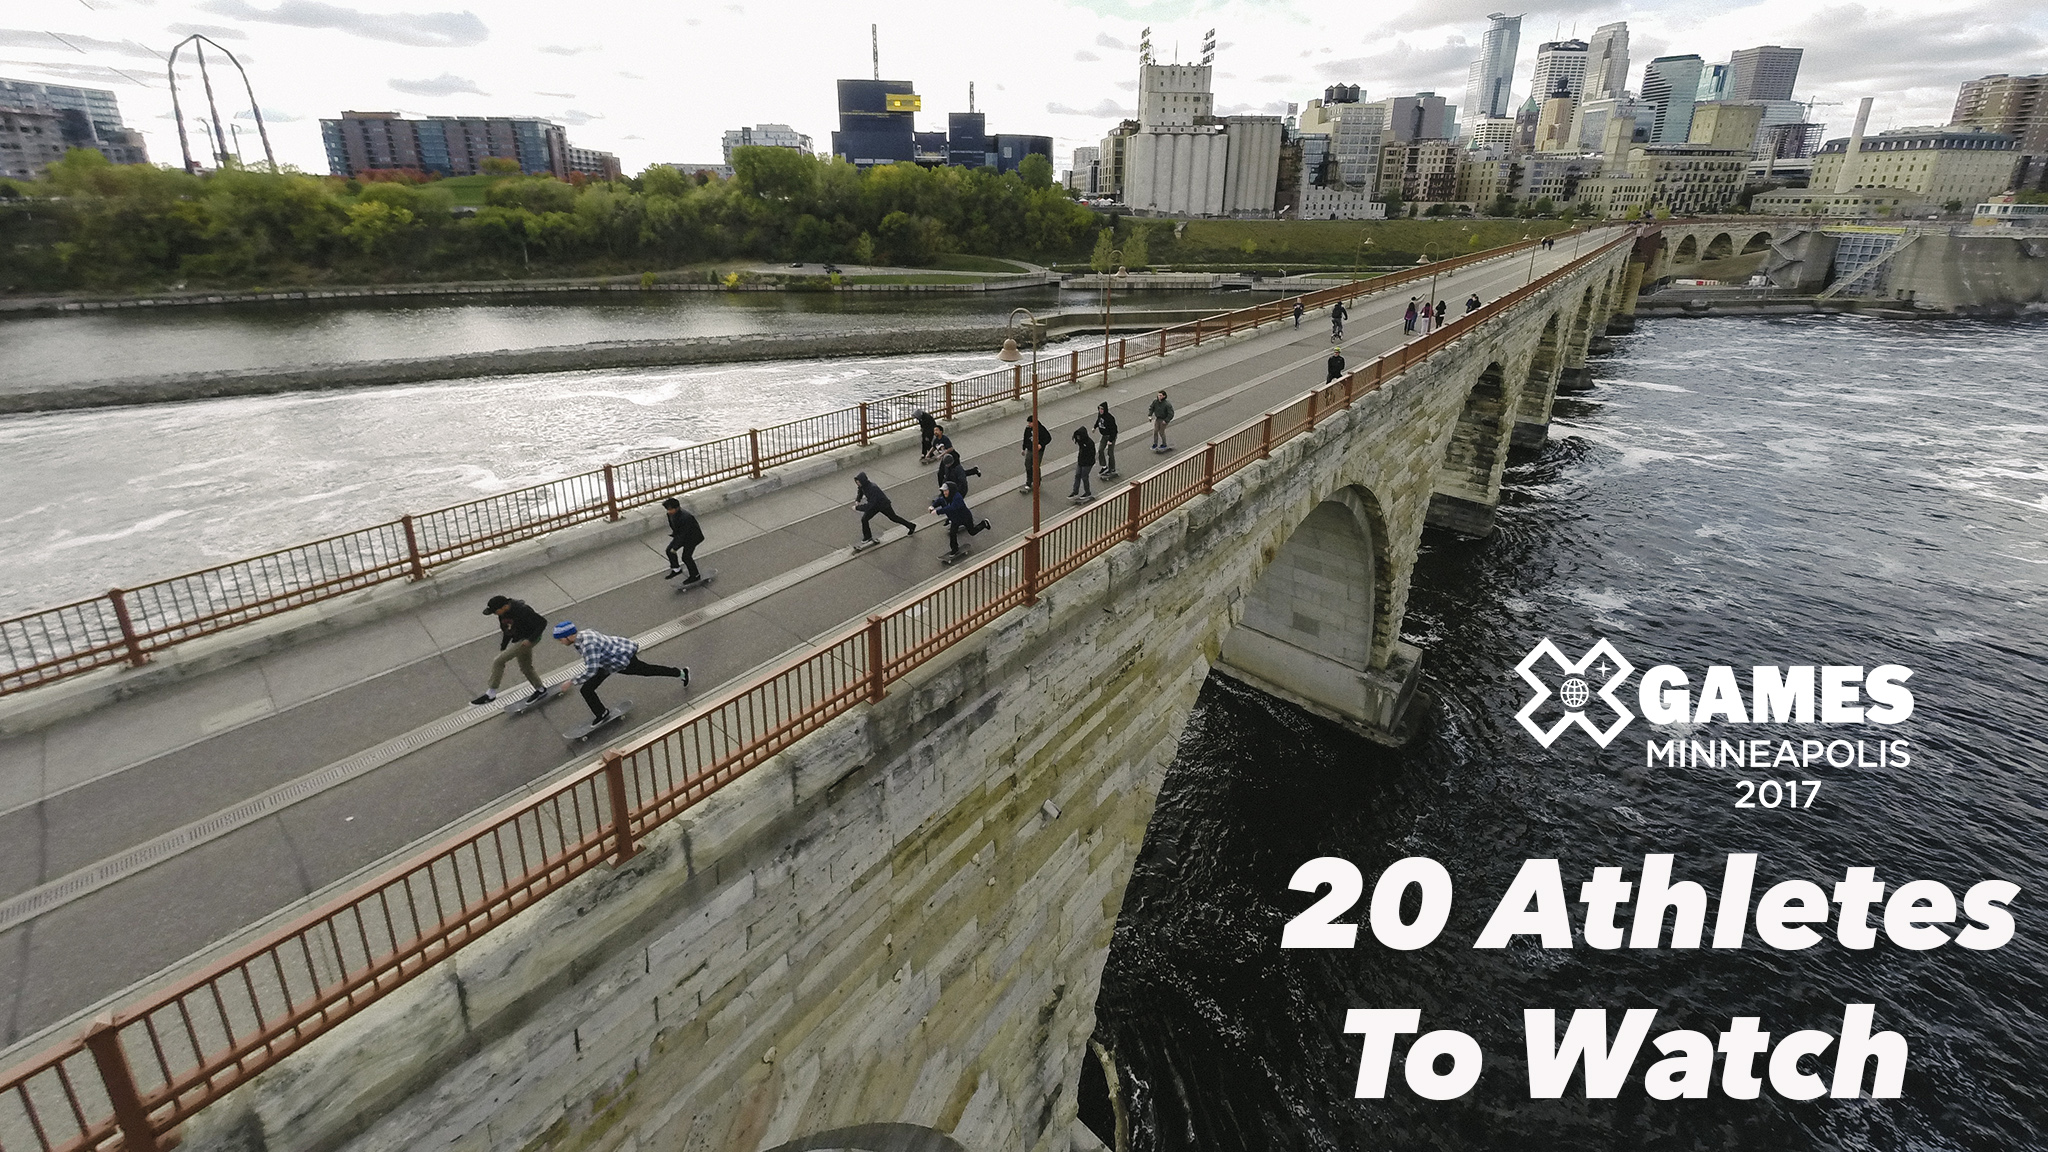 X Games Minneapolis: Athletes to watch